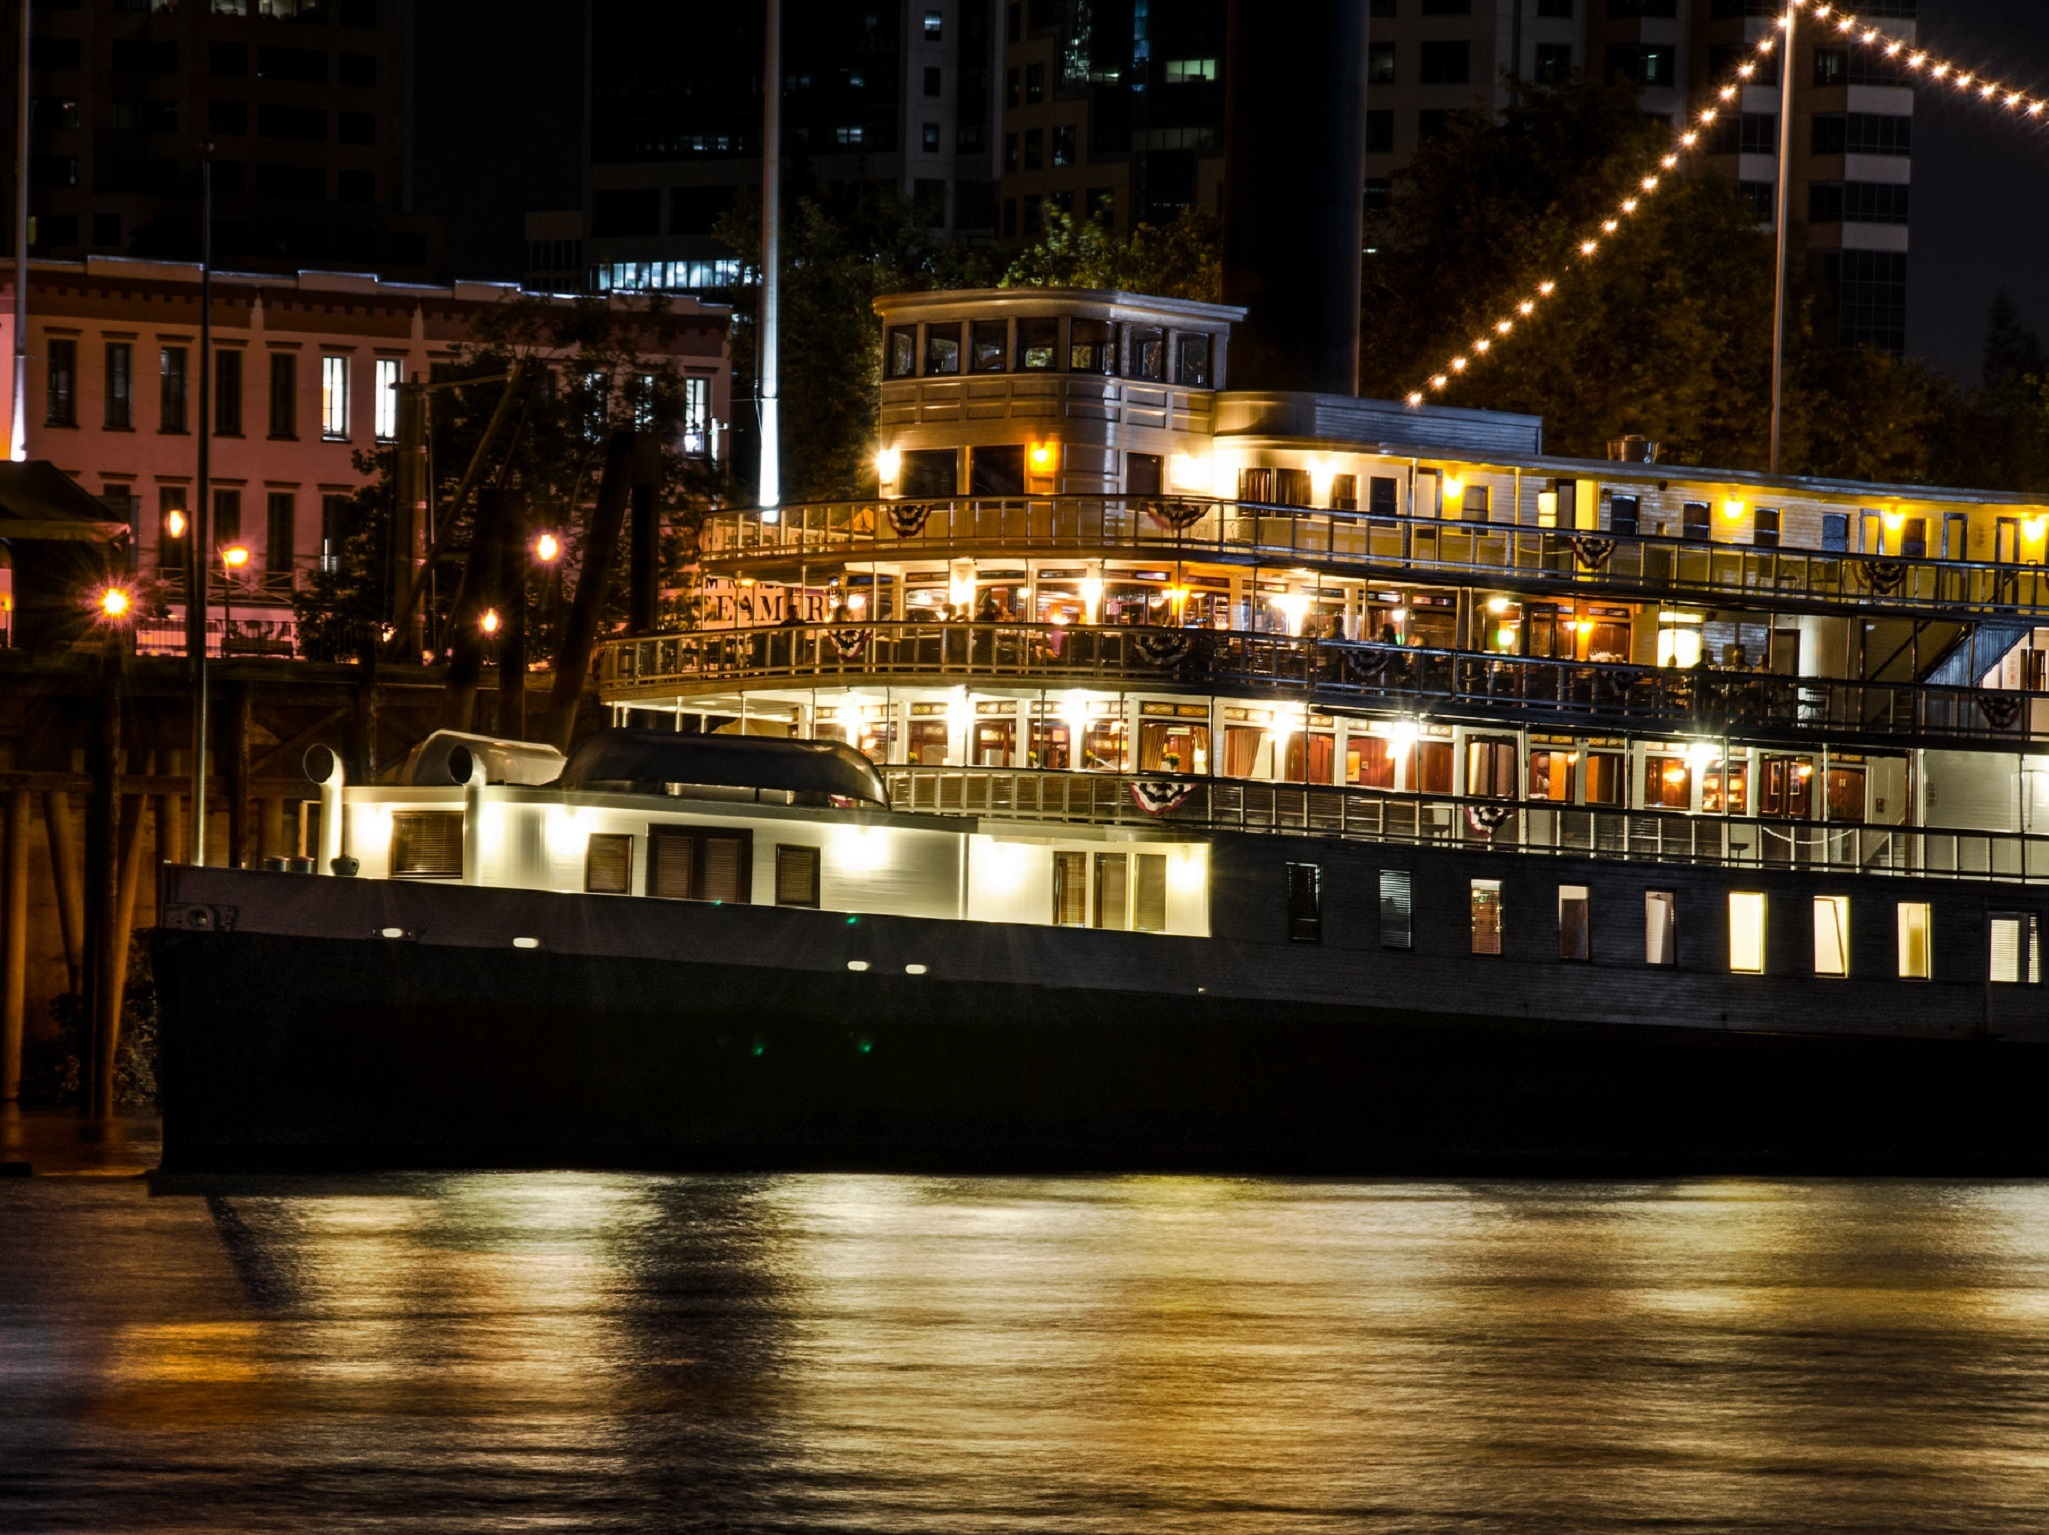 A paddle wheel boat in the delta at night